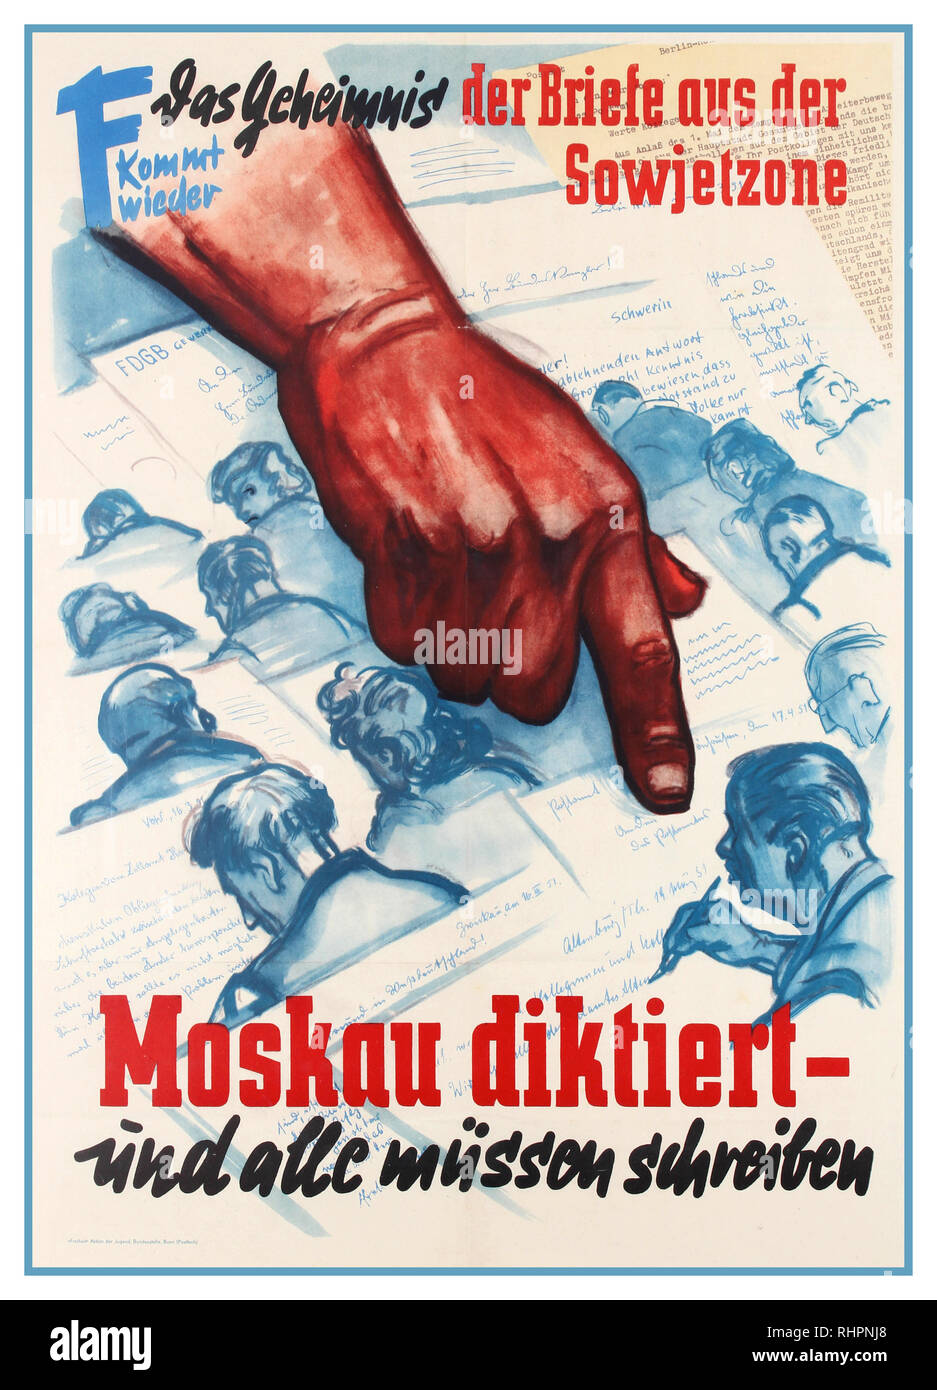 MOSCOW DICTATES Vintage German Cold War era anti-Soviet propaganda poster 'The secrets of the Letters from the Soviet Zone Moscow dictates and all must write'. Illustration features a hand pointing down over people writing letters with letters in different typed and handwriting in the background, the text in stylised red and black letters. Germany. 1950s - Stock Image